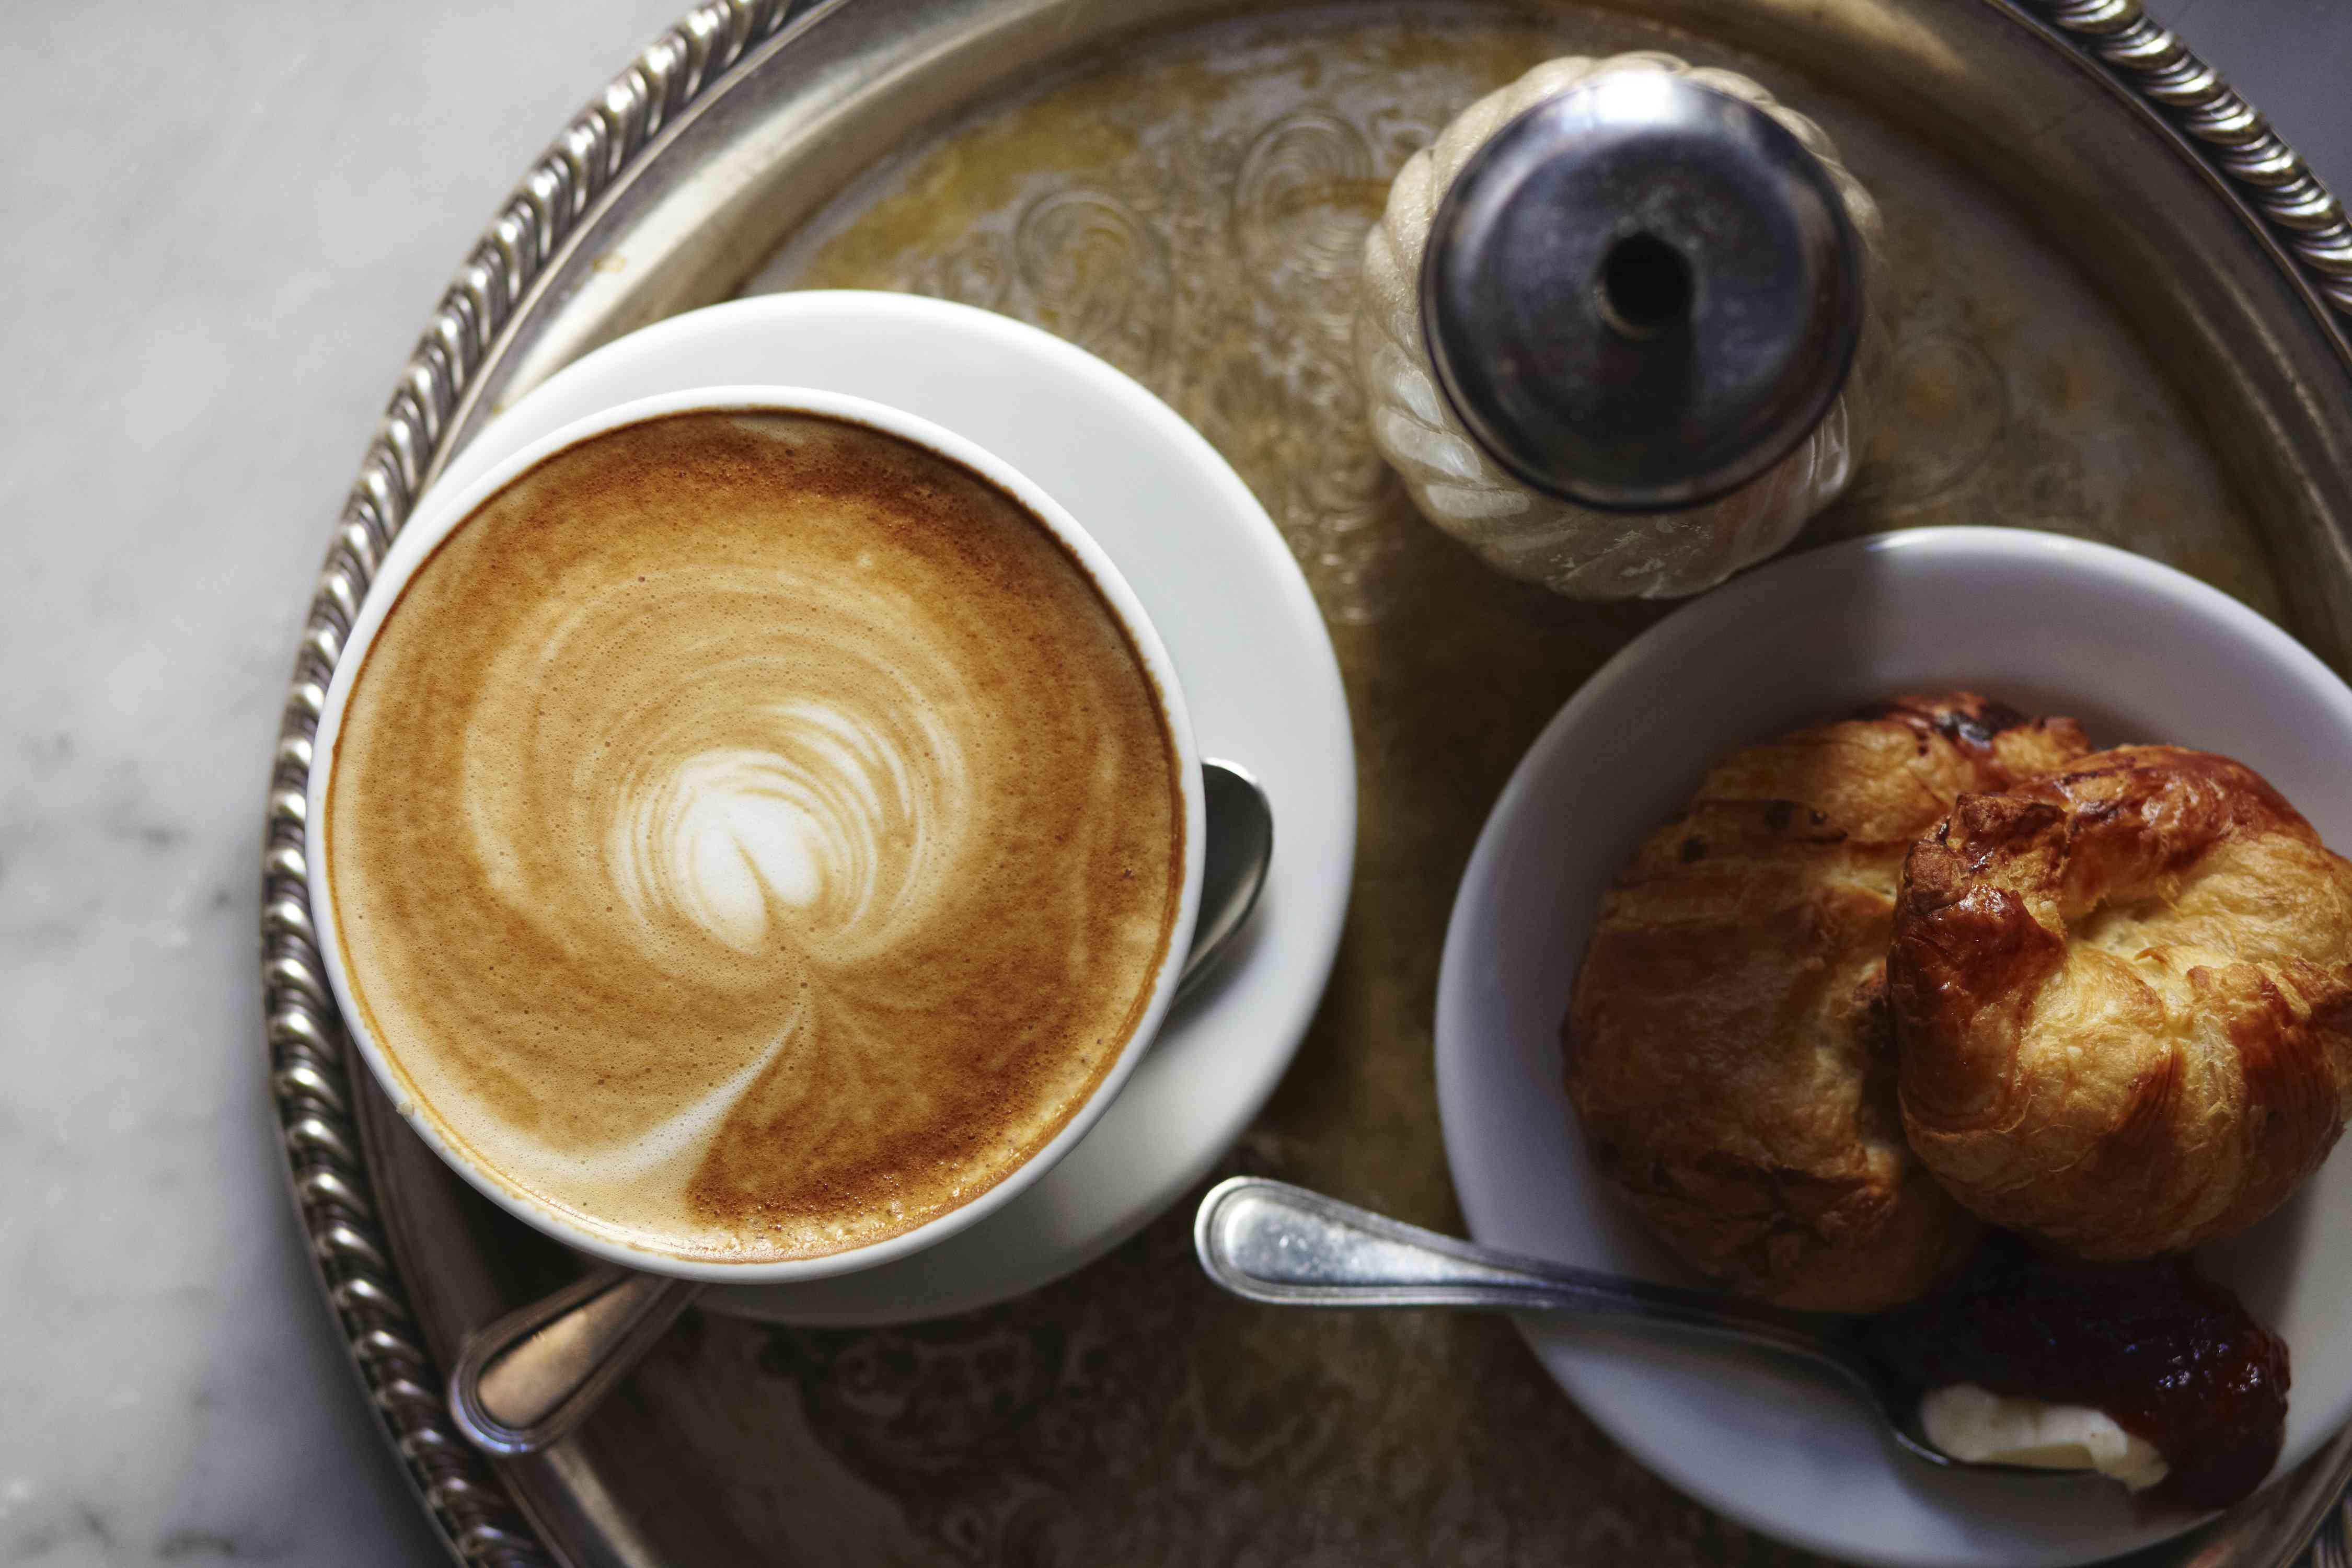 latte and croissants from Buvette